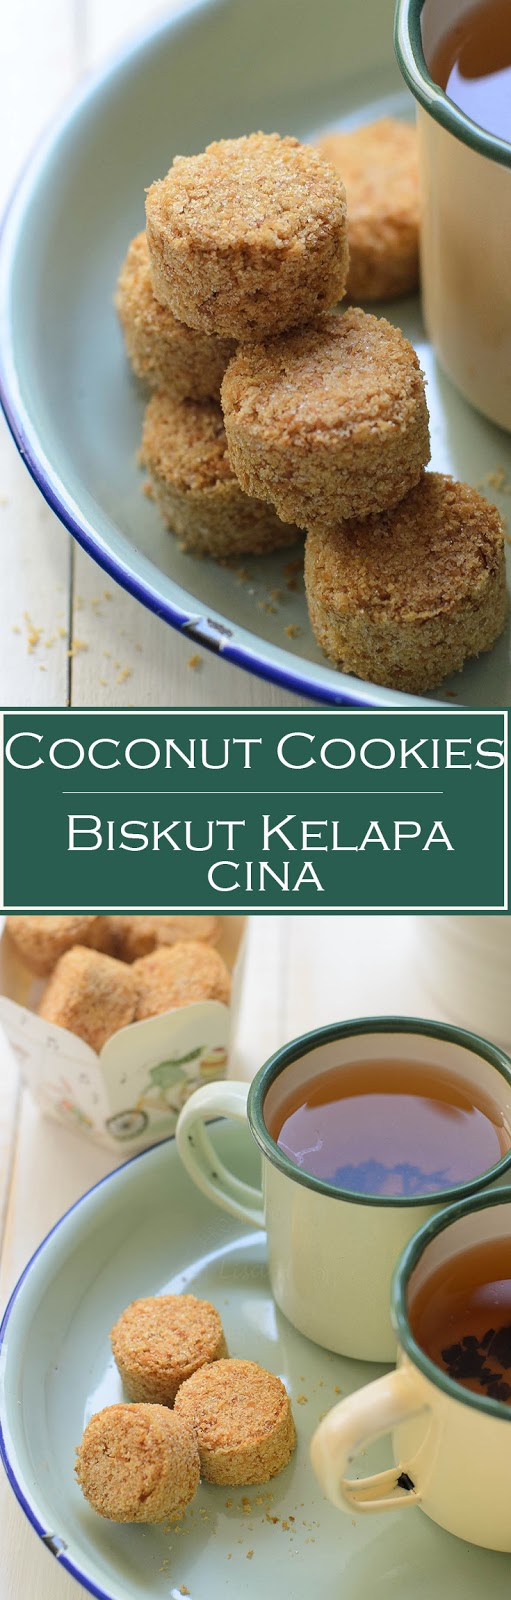 Coconut cookies/ biskut kelapa cina are made of over baked dinner rolls and desiccated coconut.  These cookies are addictively delicious. One of my favourite childhood school snack.